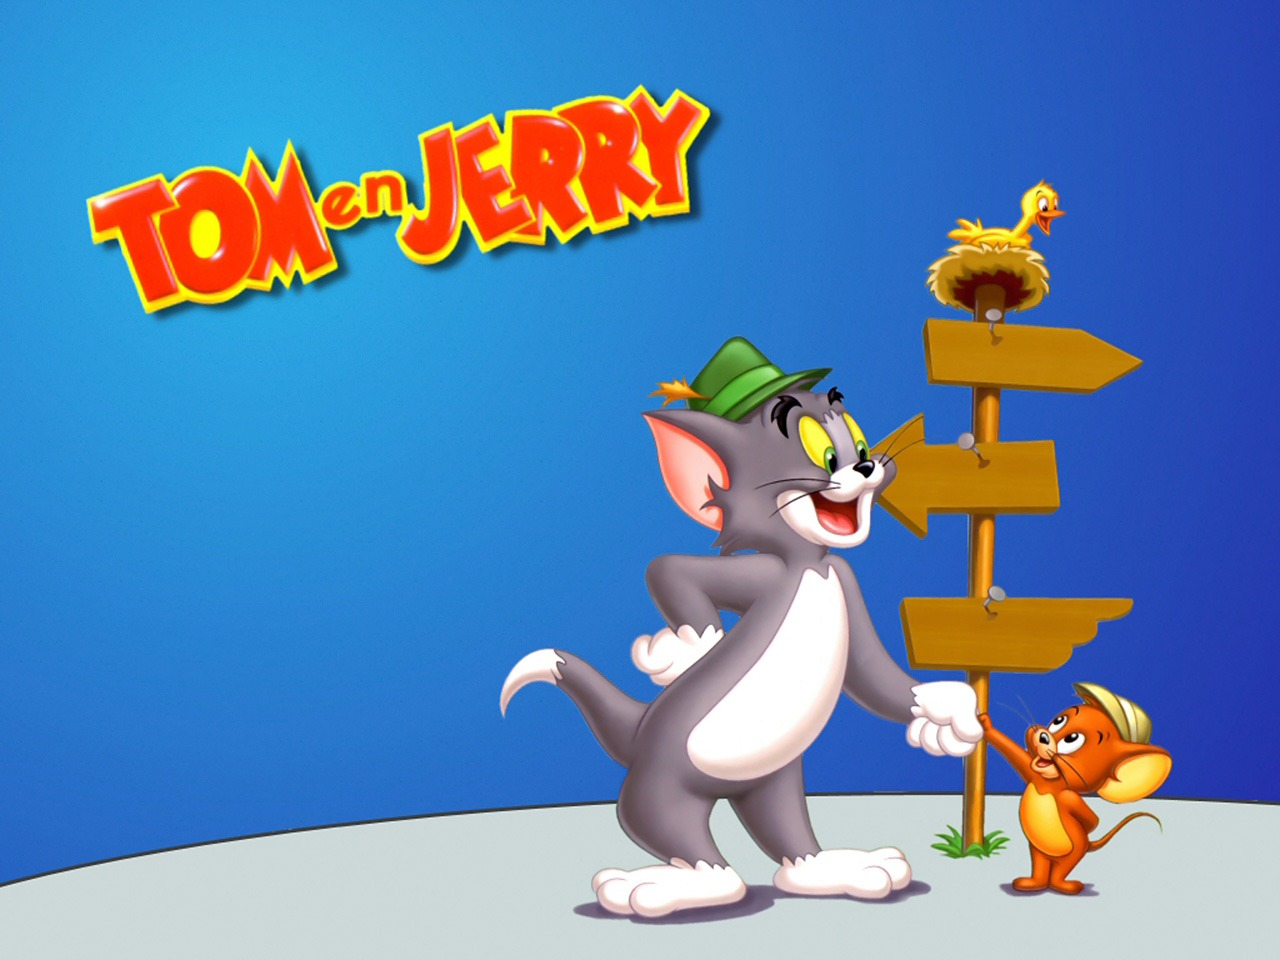 Tom And Jerry Wallpaper Cartoons Anime Animated Wallpapers